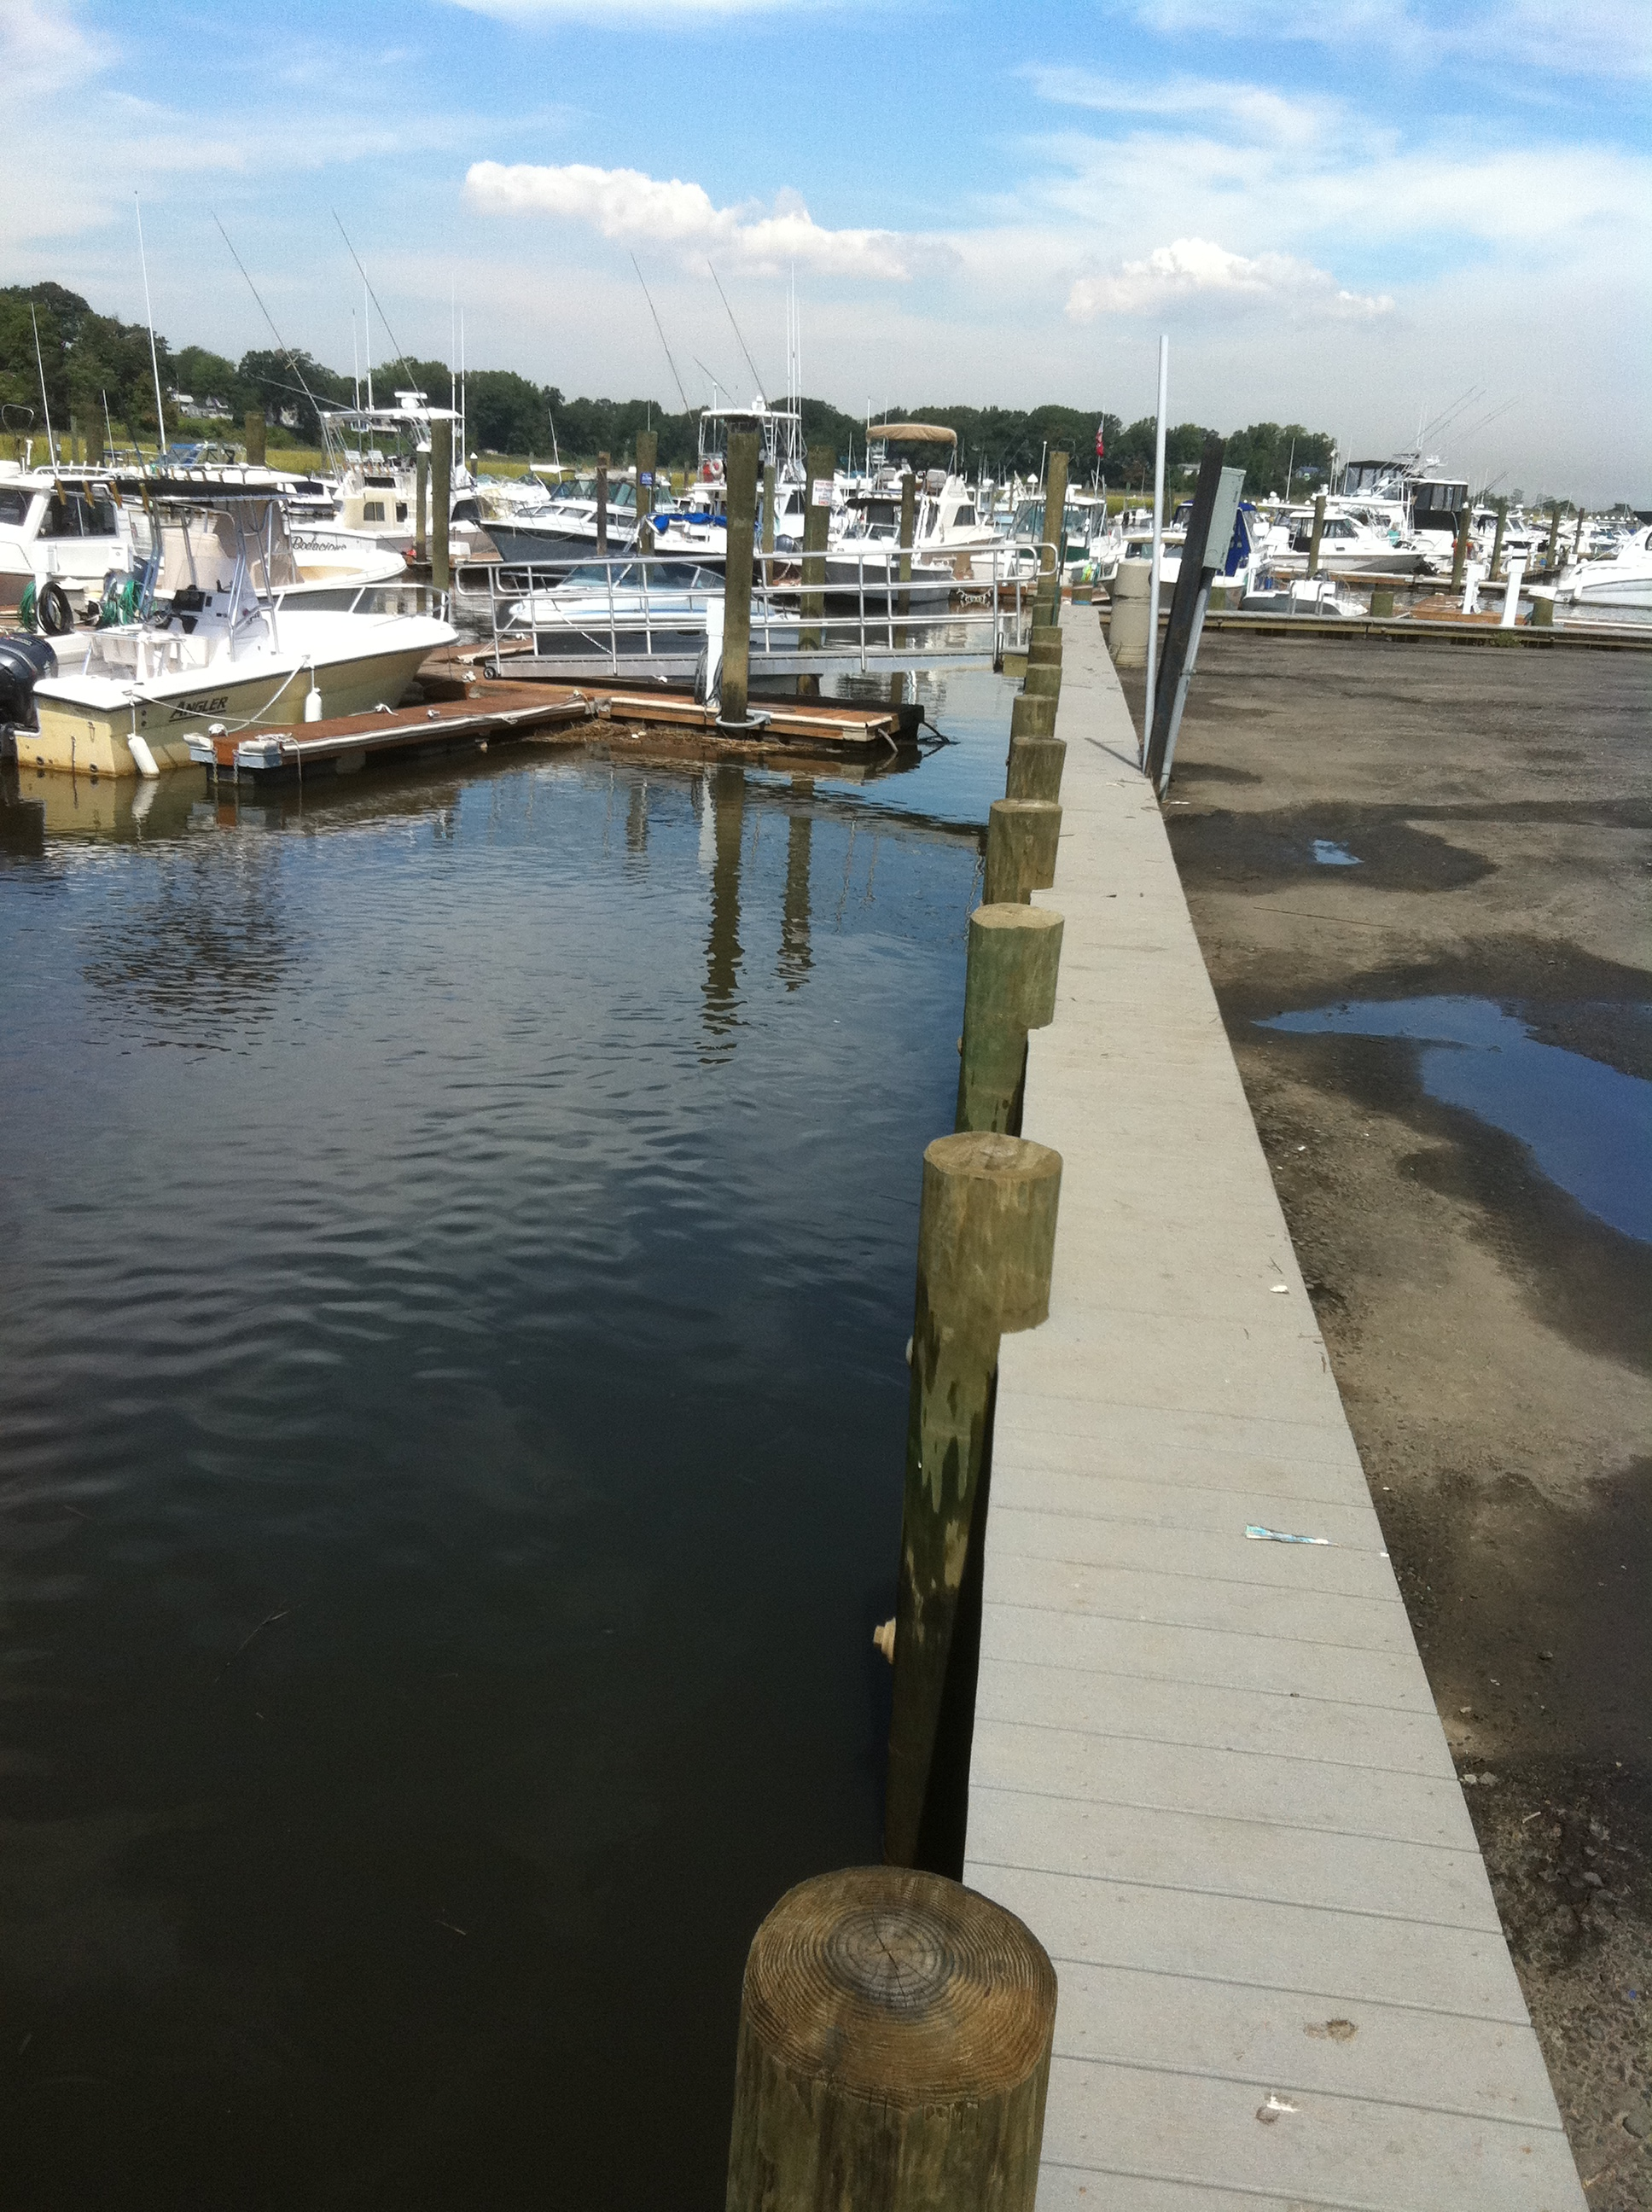 Brown's Point Marina, Keyport, NJ